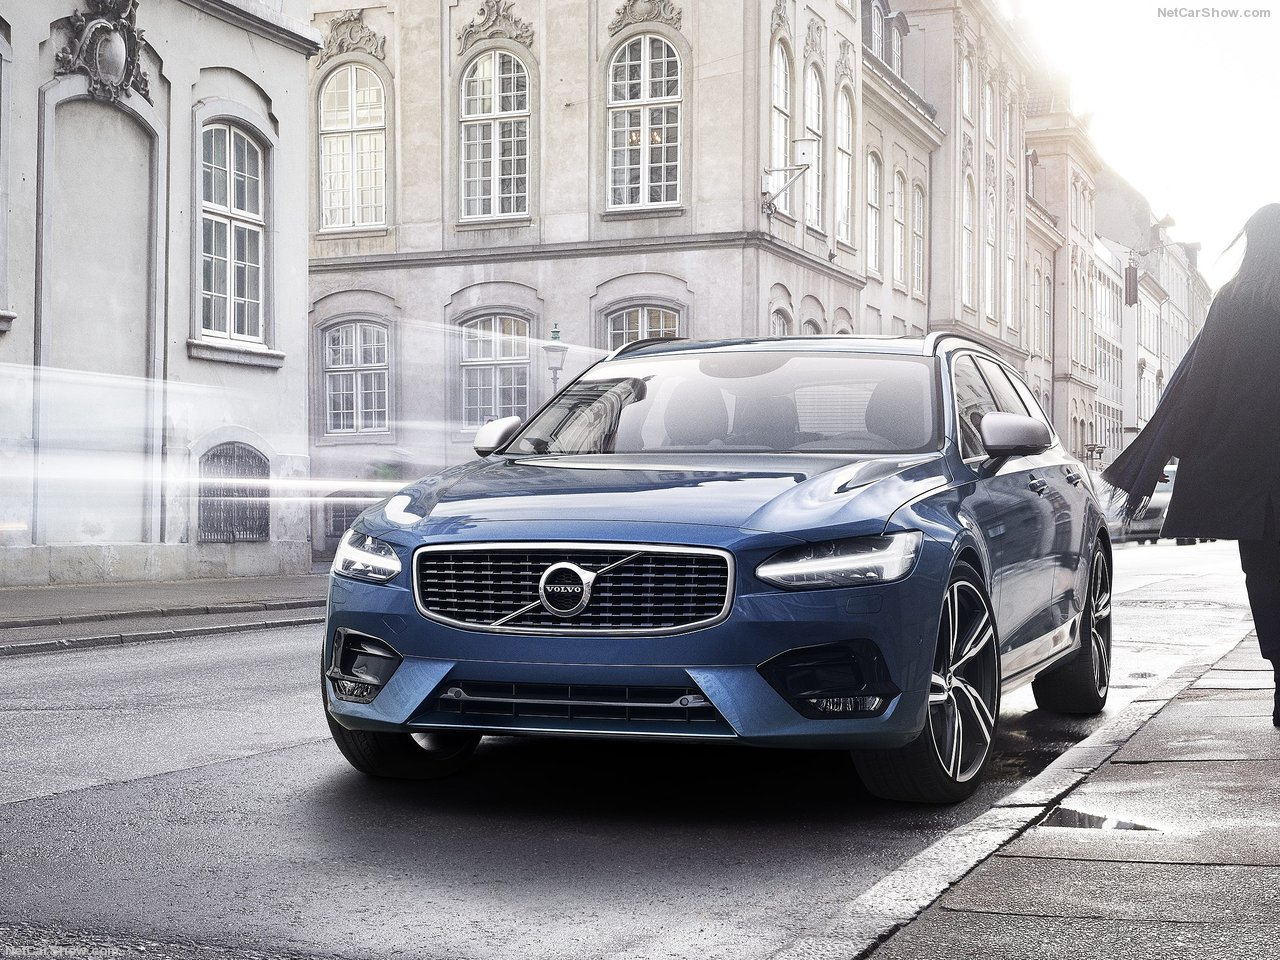 Volvo Sets 2021 Deadline for Its Self-Driving Car, Looks for Partners - autoevolution